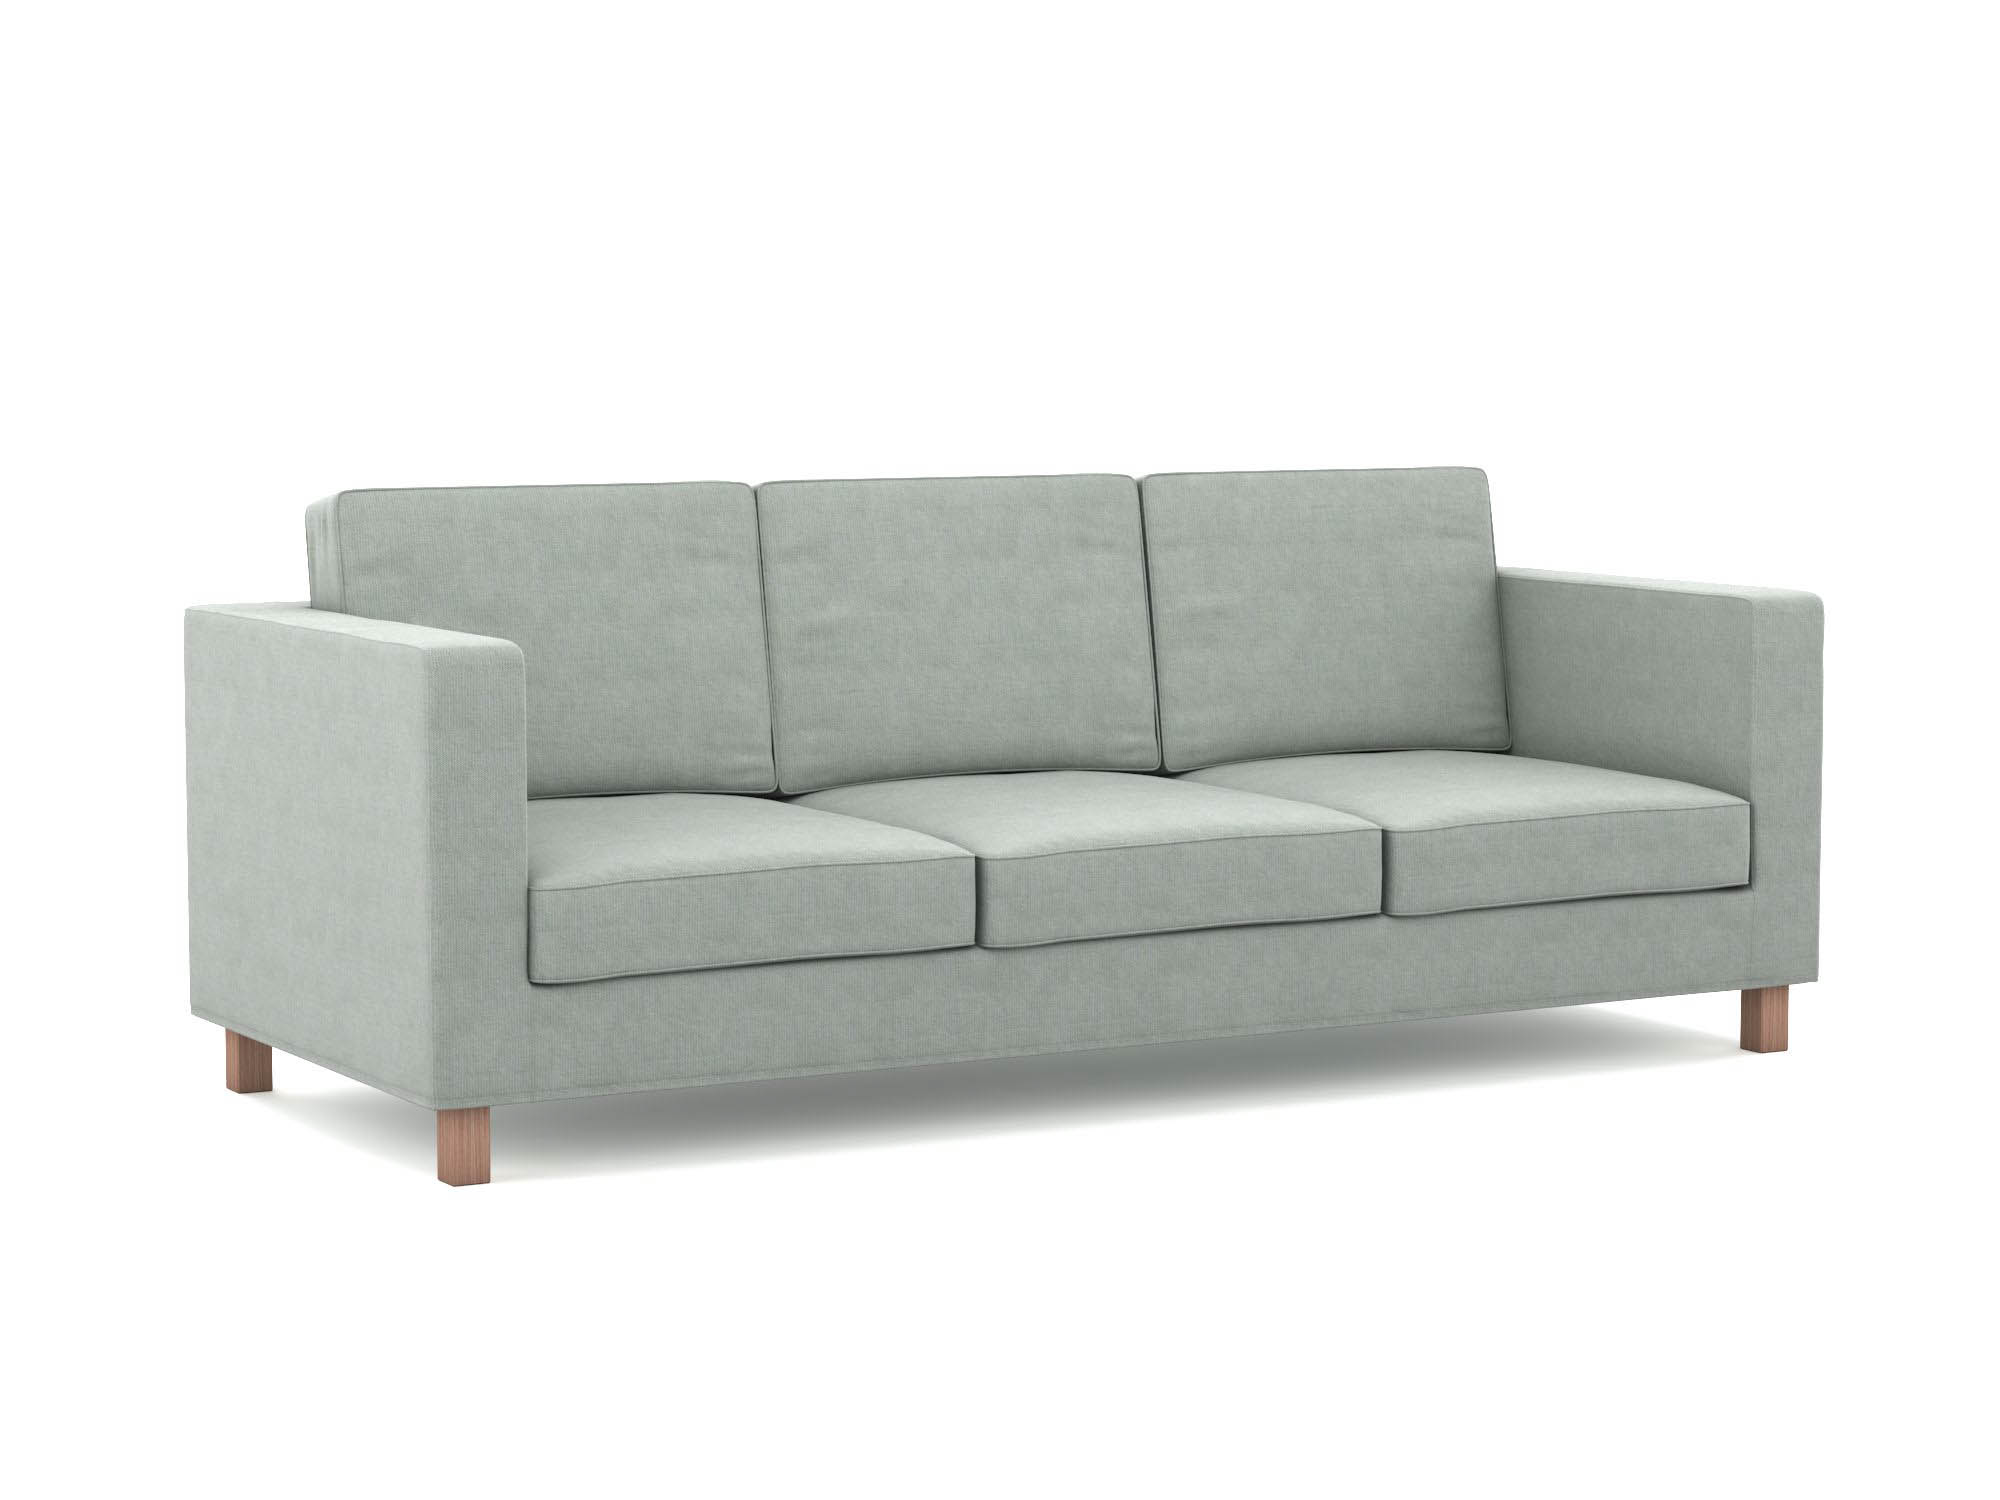 Your new IKEA Karlanda 3-seater sofa cover | vidian-design.com